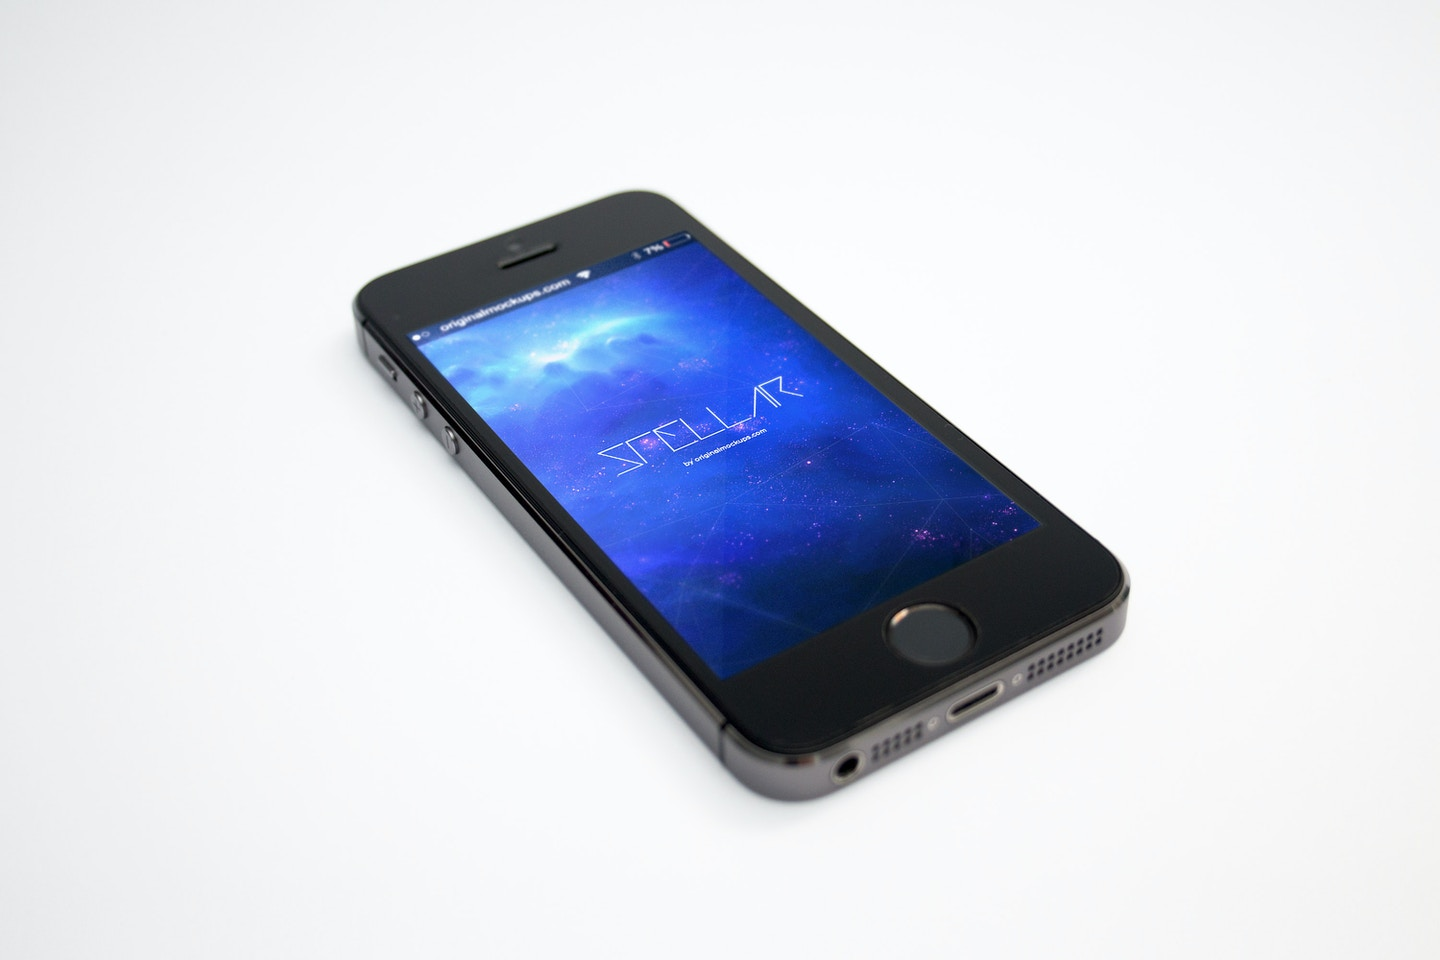 iPhone 5s Space Gray Mockup 02